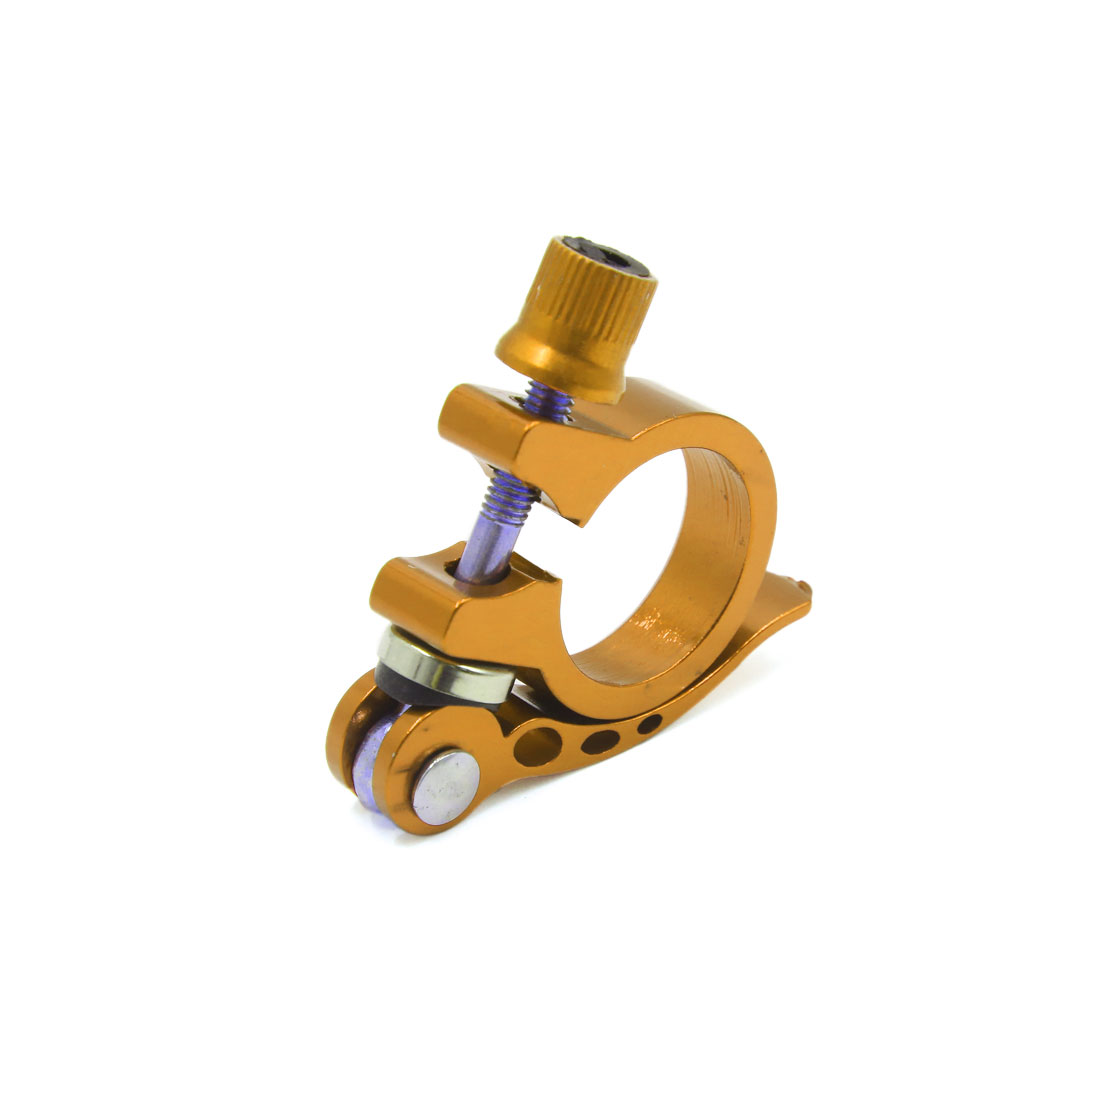 28.6mm Dia Gold Tone Aluminum Alloy Bicycle Bike MTB Quick Release Seat Post Clamp